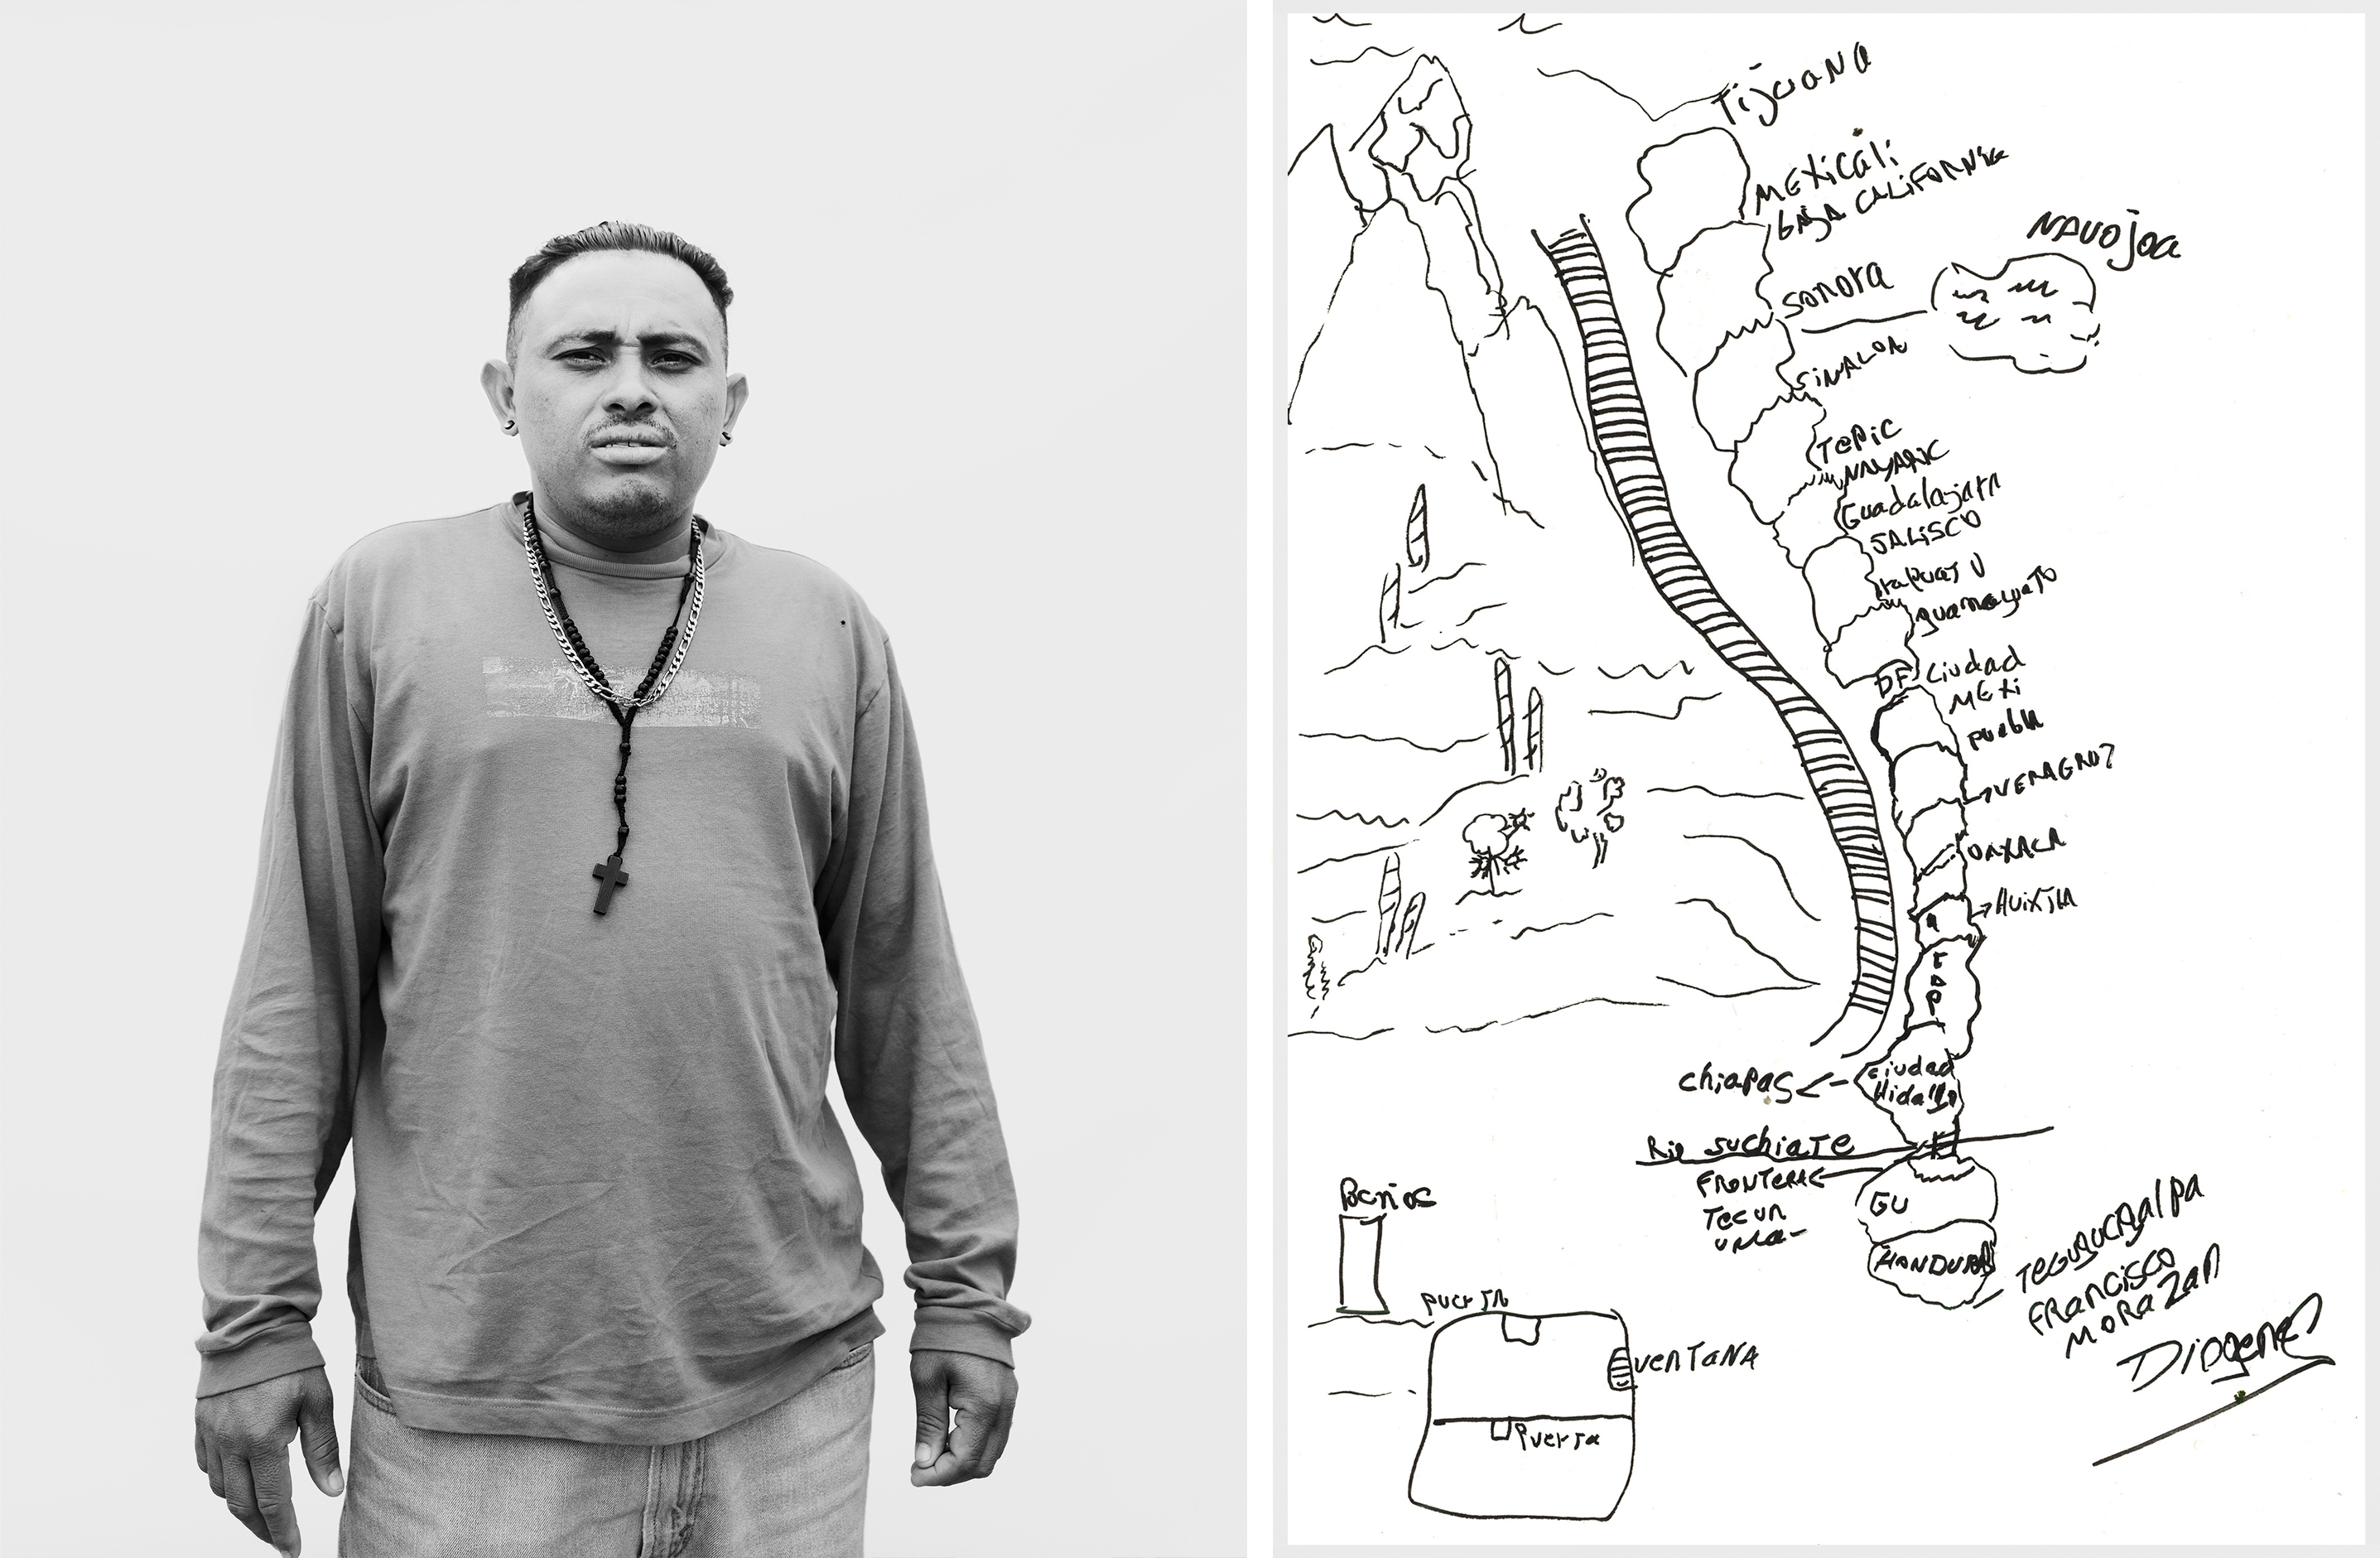 Diógenes Banegas, 34, drew a map of his journey to the U.S. border from his home in Tegucigalpa, Honduras